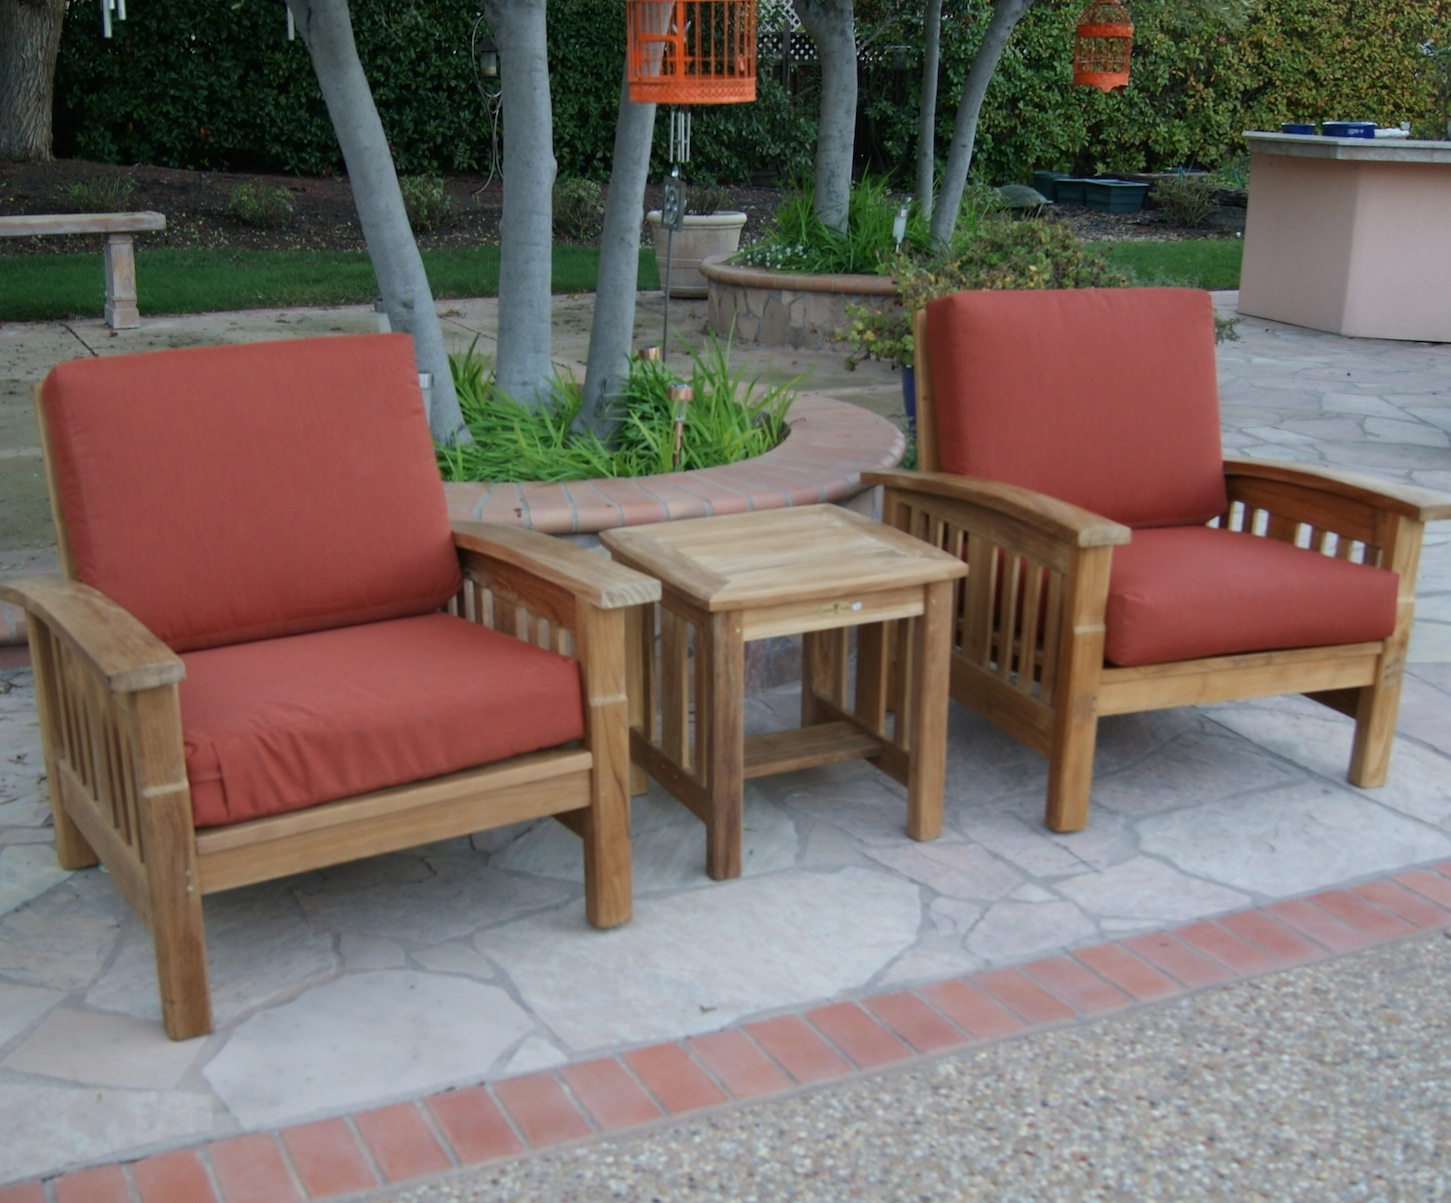 Mission Deep Seat Chair - Mission Style Deep Seating Set By Tomsoutdoorfurniture.com